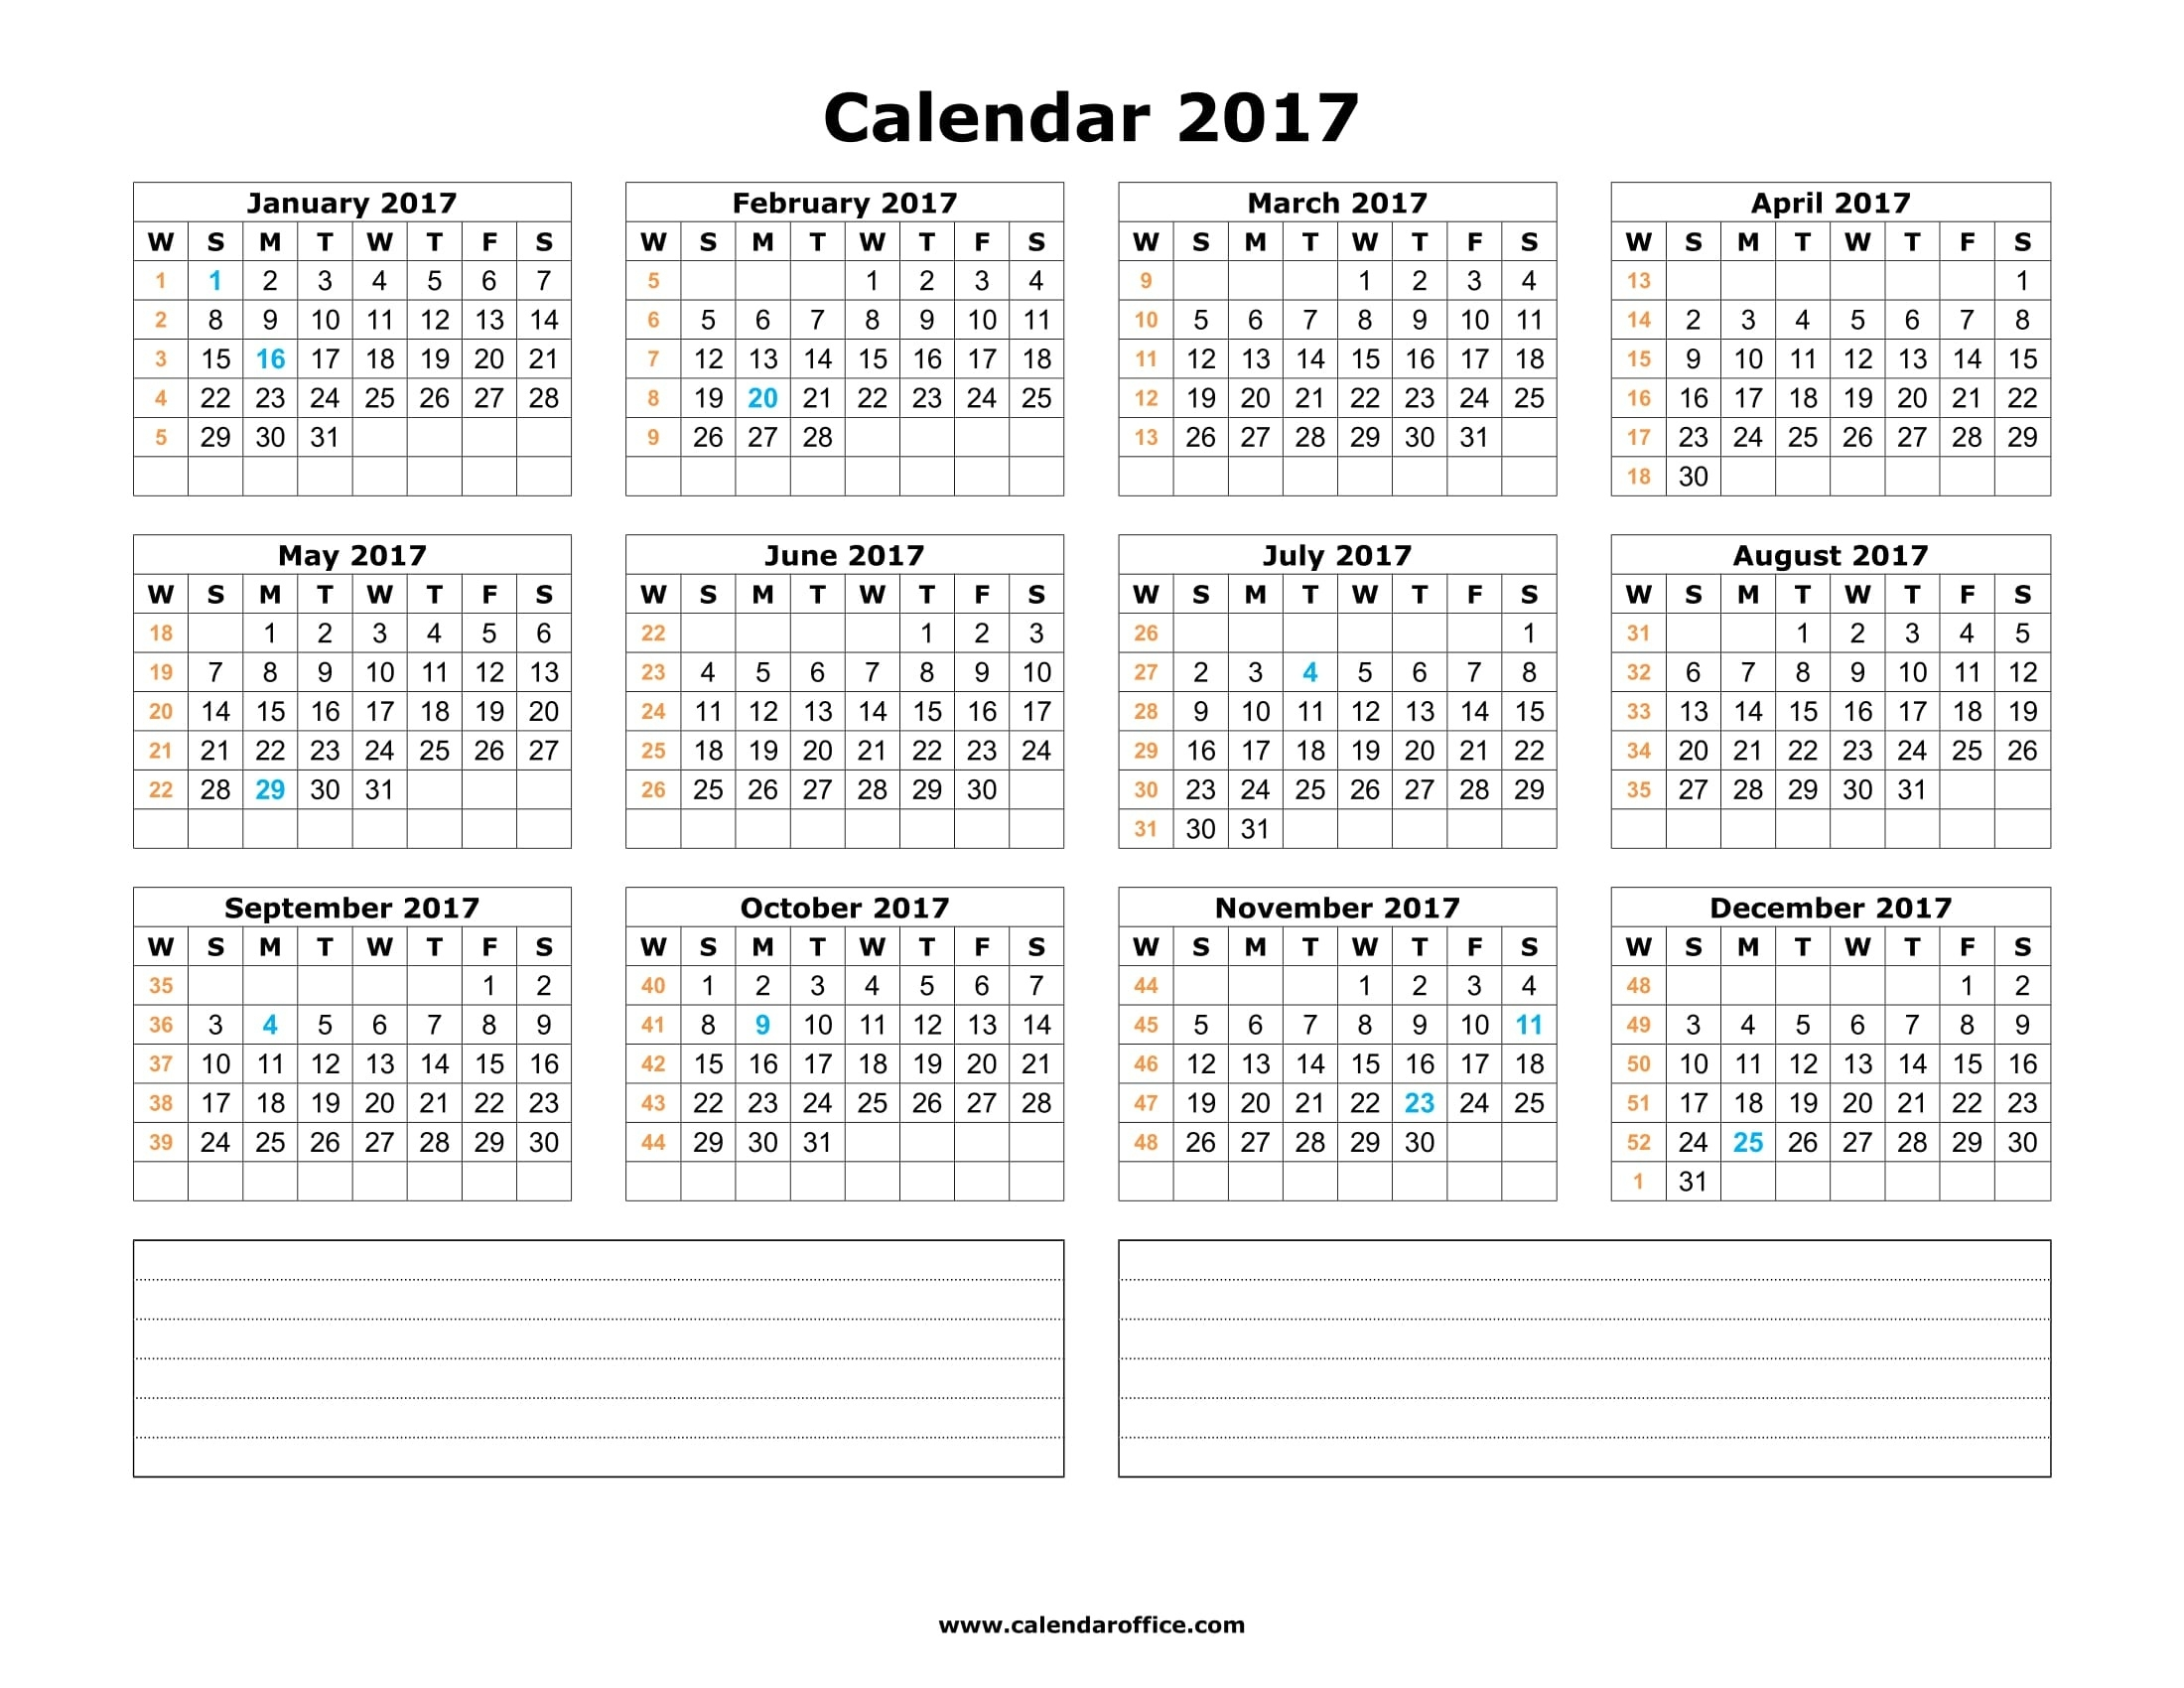 Webelations - 2017 Free Printable Calendars  Calander From August - December